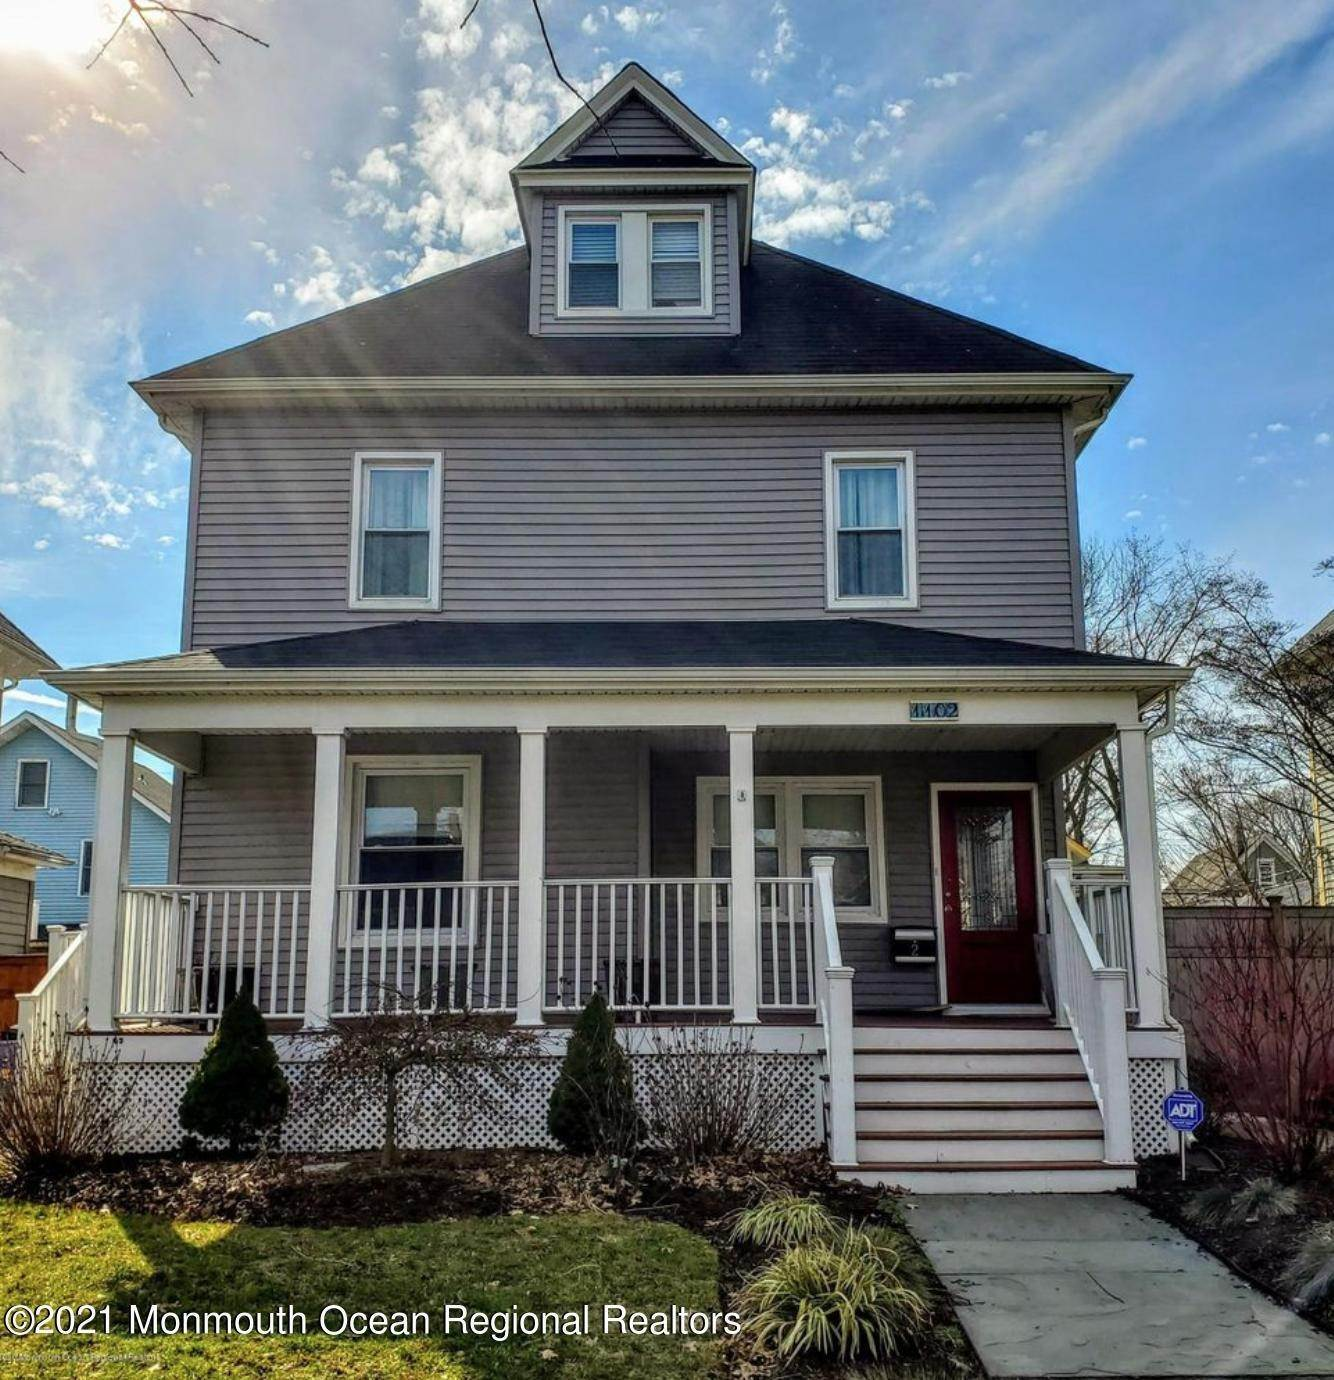 Single Family Home for Rent at 1102 5th Avenue Asbury Park, New Jersey, 07712 United States